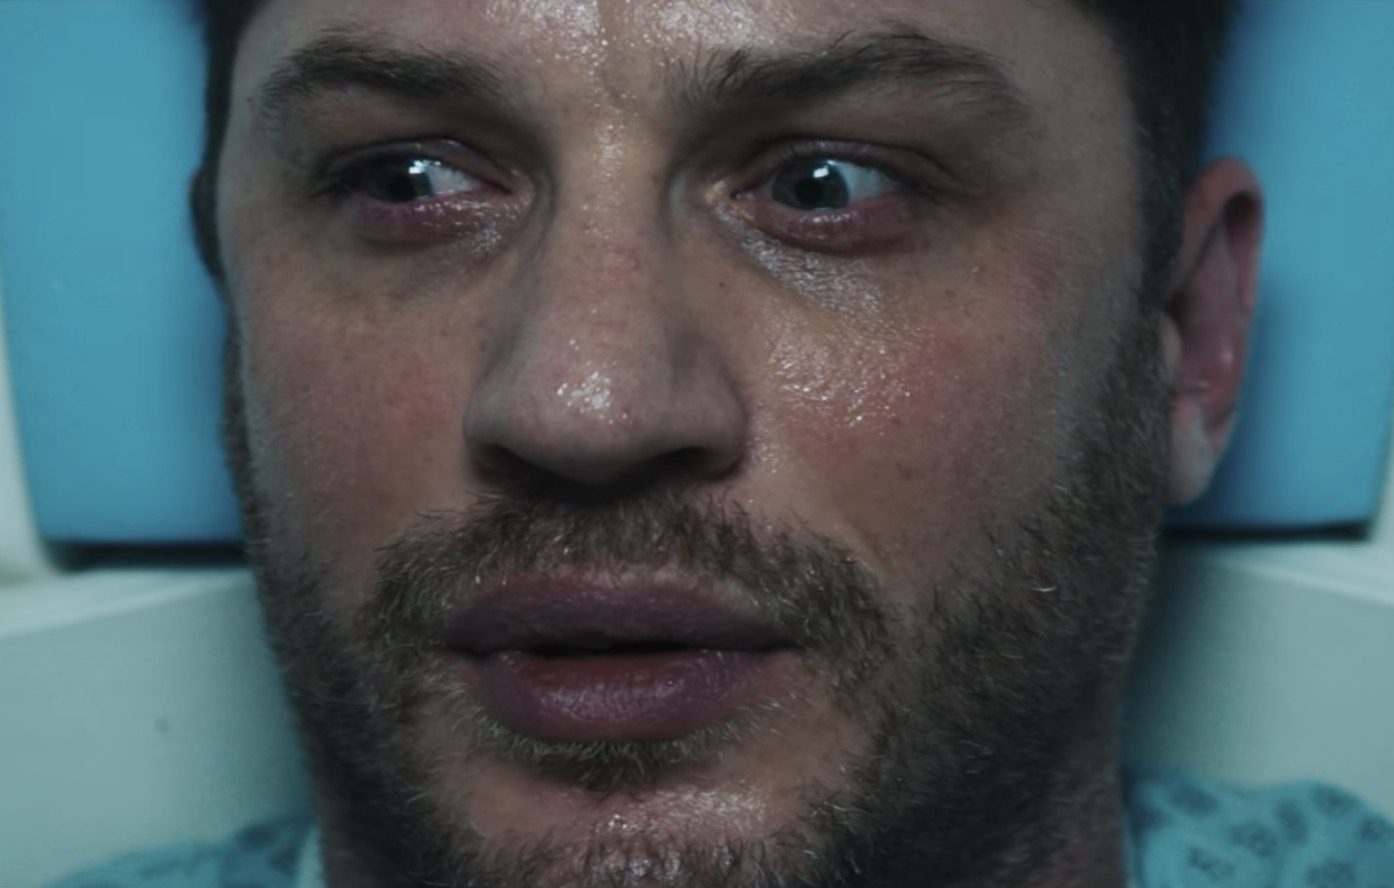 'Venom': First Trailer Unleashes Tom Hardy as the Twisted Antihero